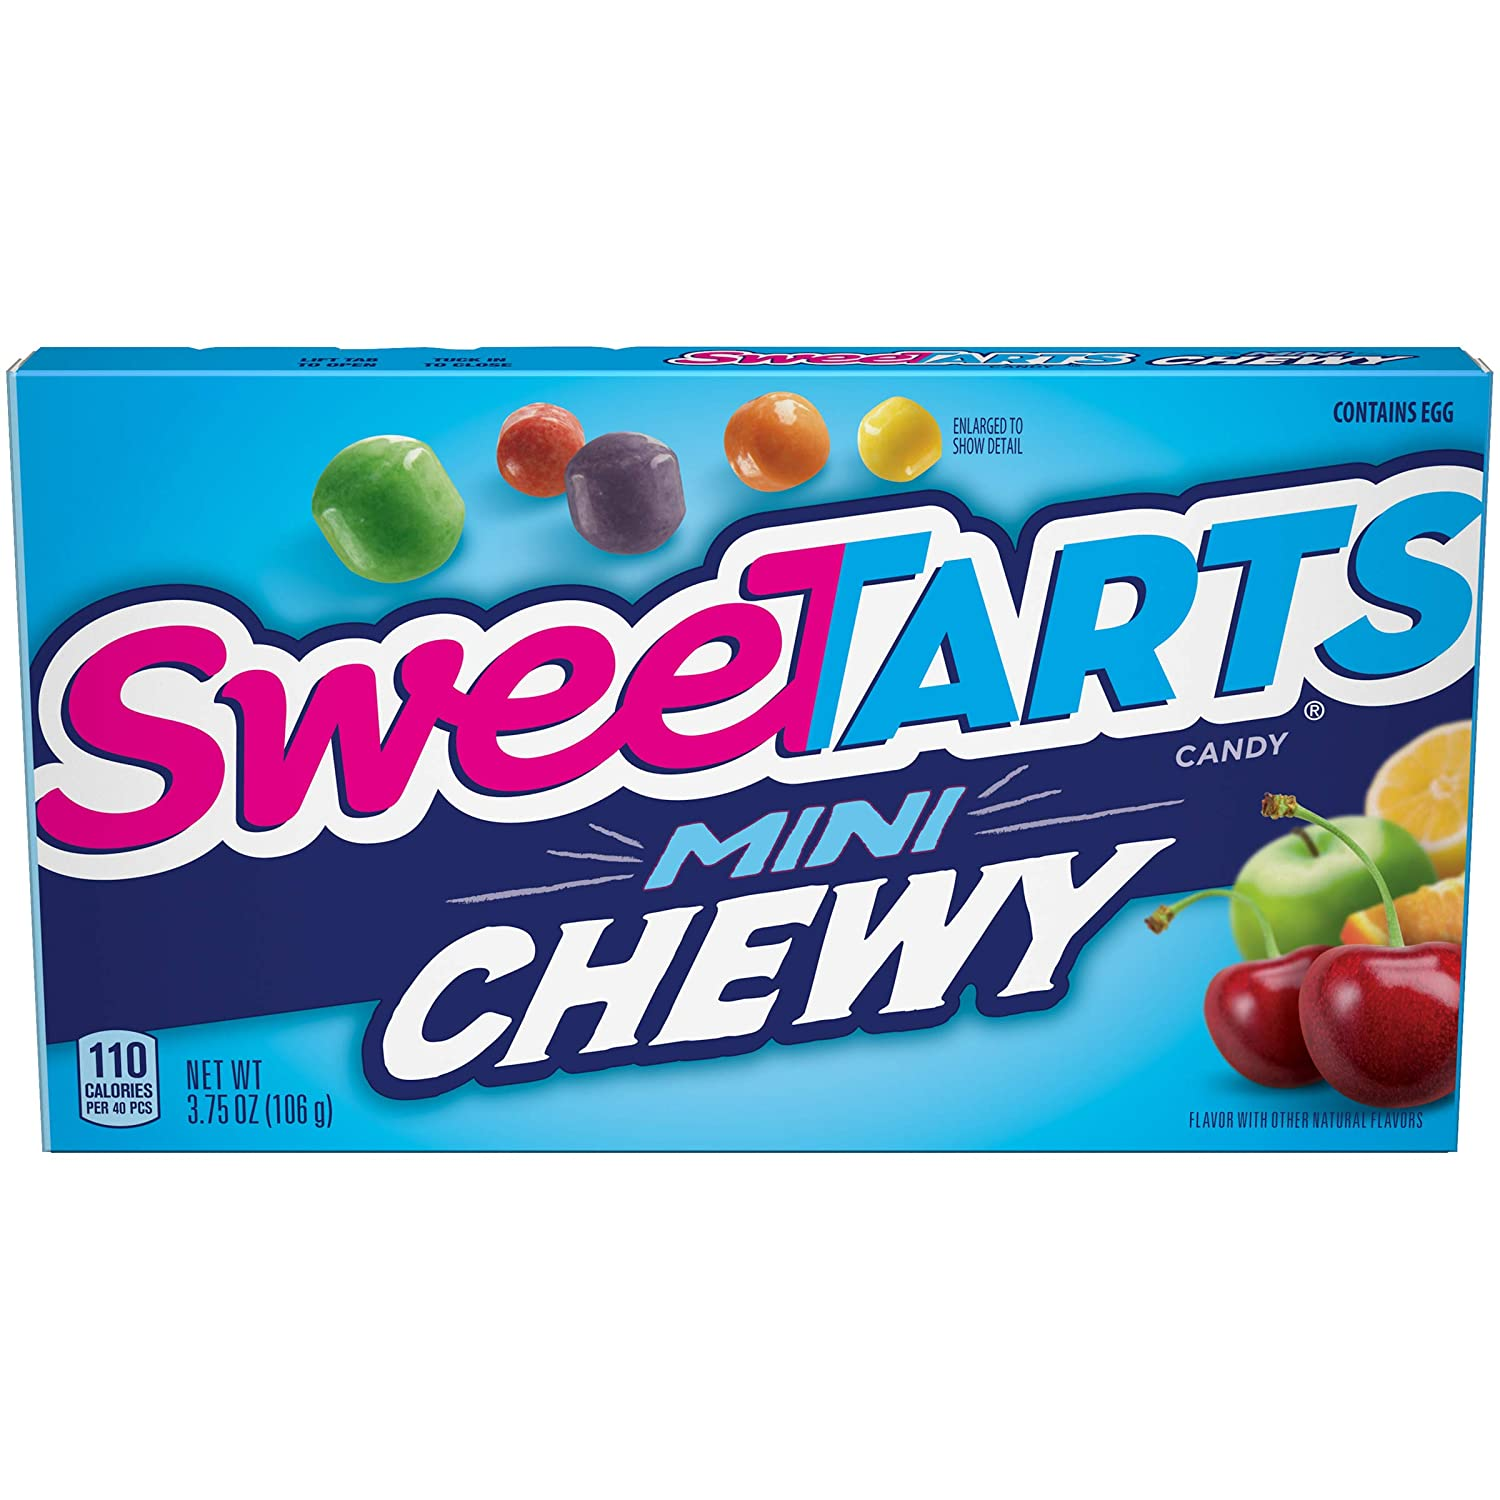 SweeTARTS Mini Chewy Candy Theater Box, 3.75 Ounce, Pack of 12 : Fruit Flavored Candies : Grocery & Gourmet Food